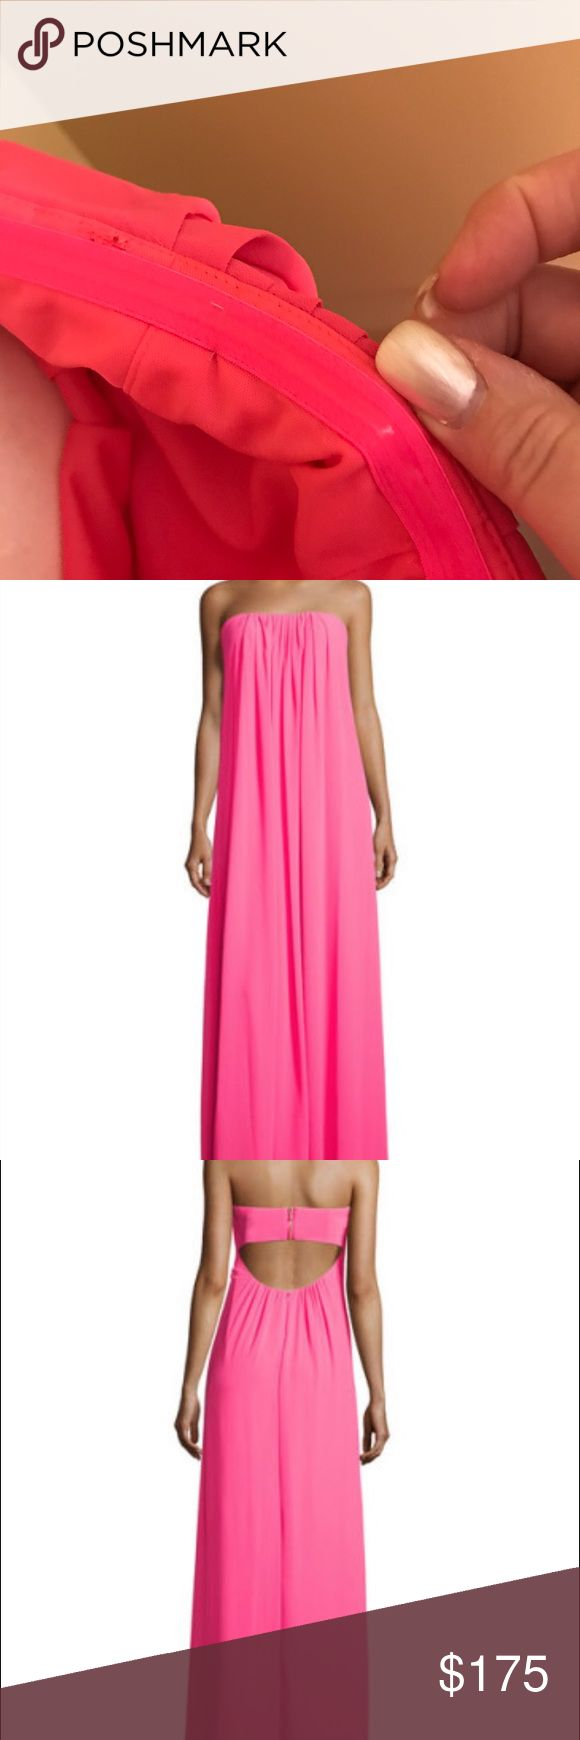 Nicole Miller New York chiffon strapless gown This new without tags chiffon hot pink gown is super sexy. Great for a cruise, the islands, or just going out on the town. Nicole Miller Dresses Maxi